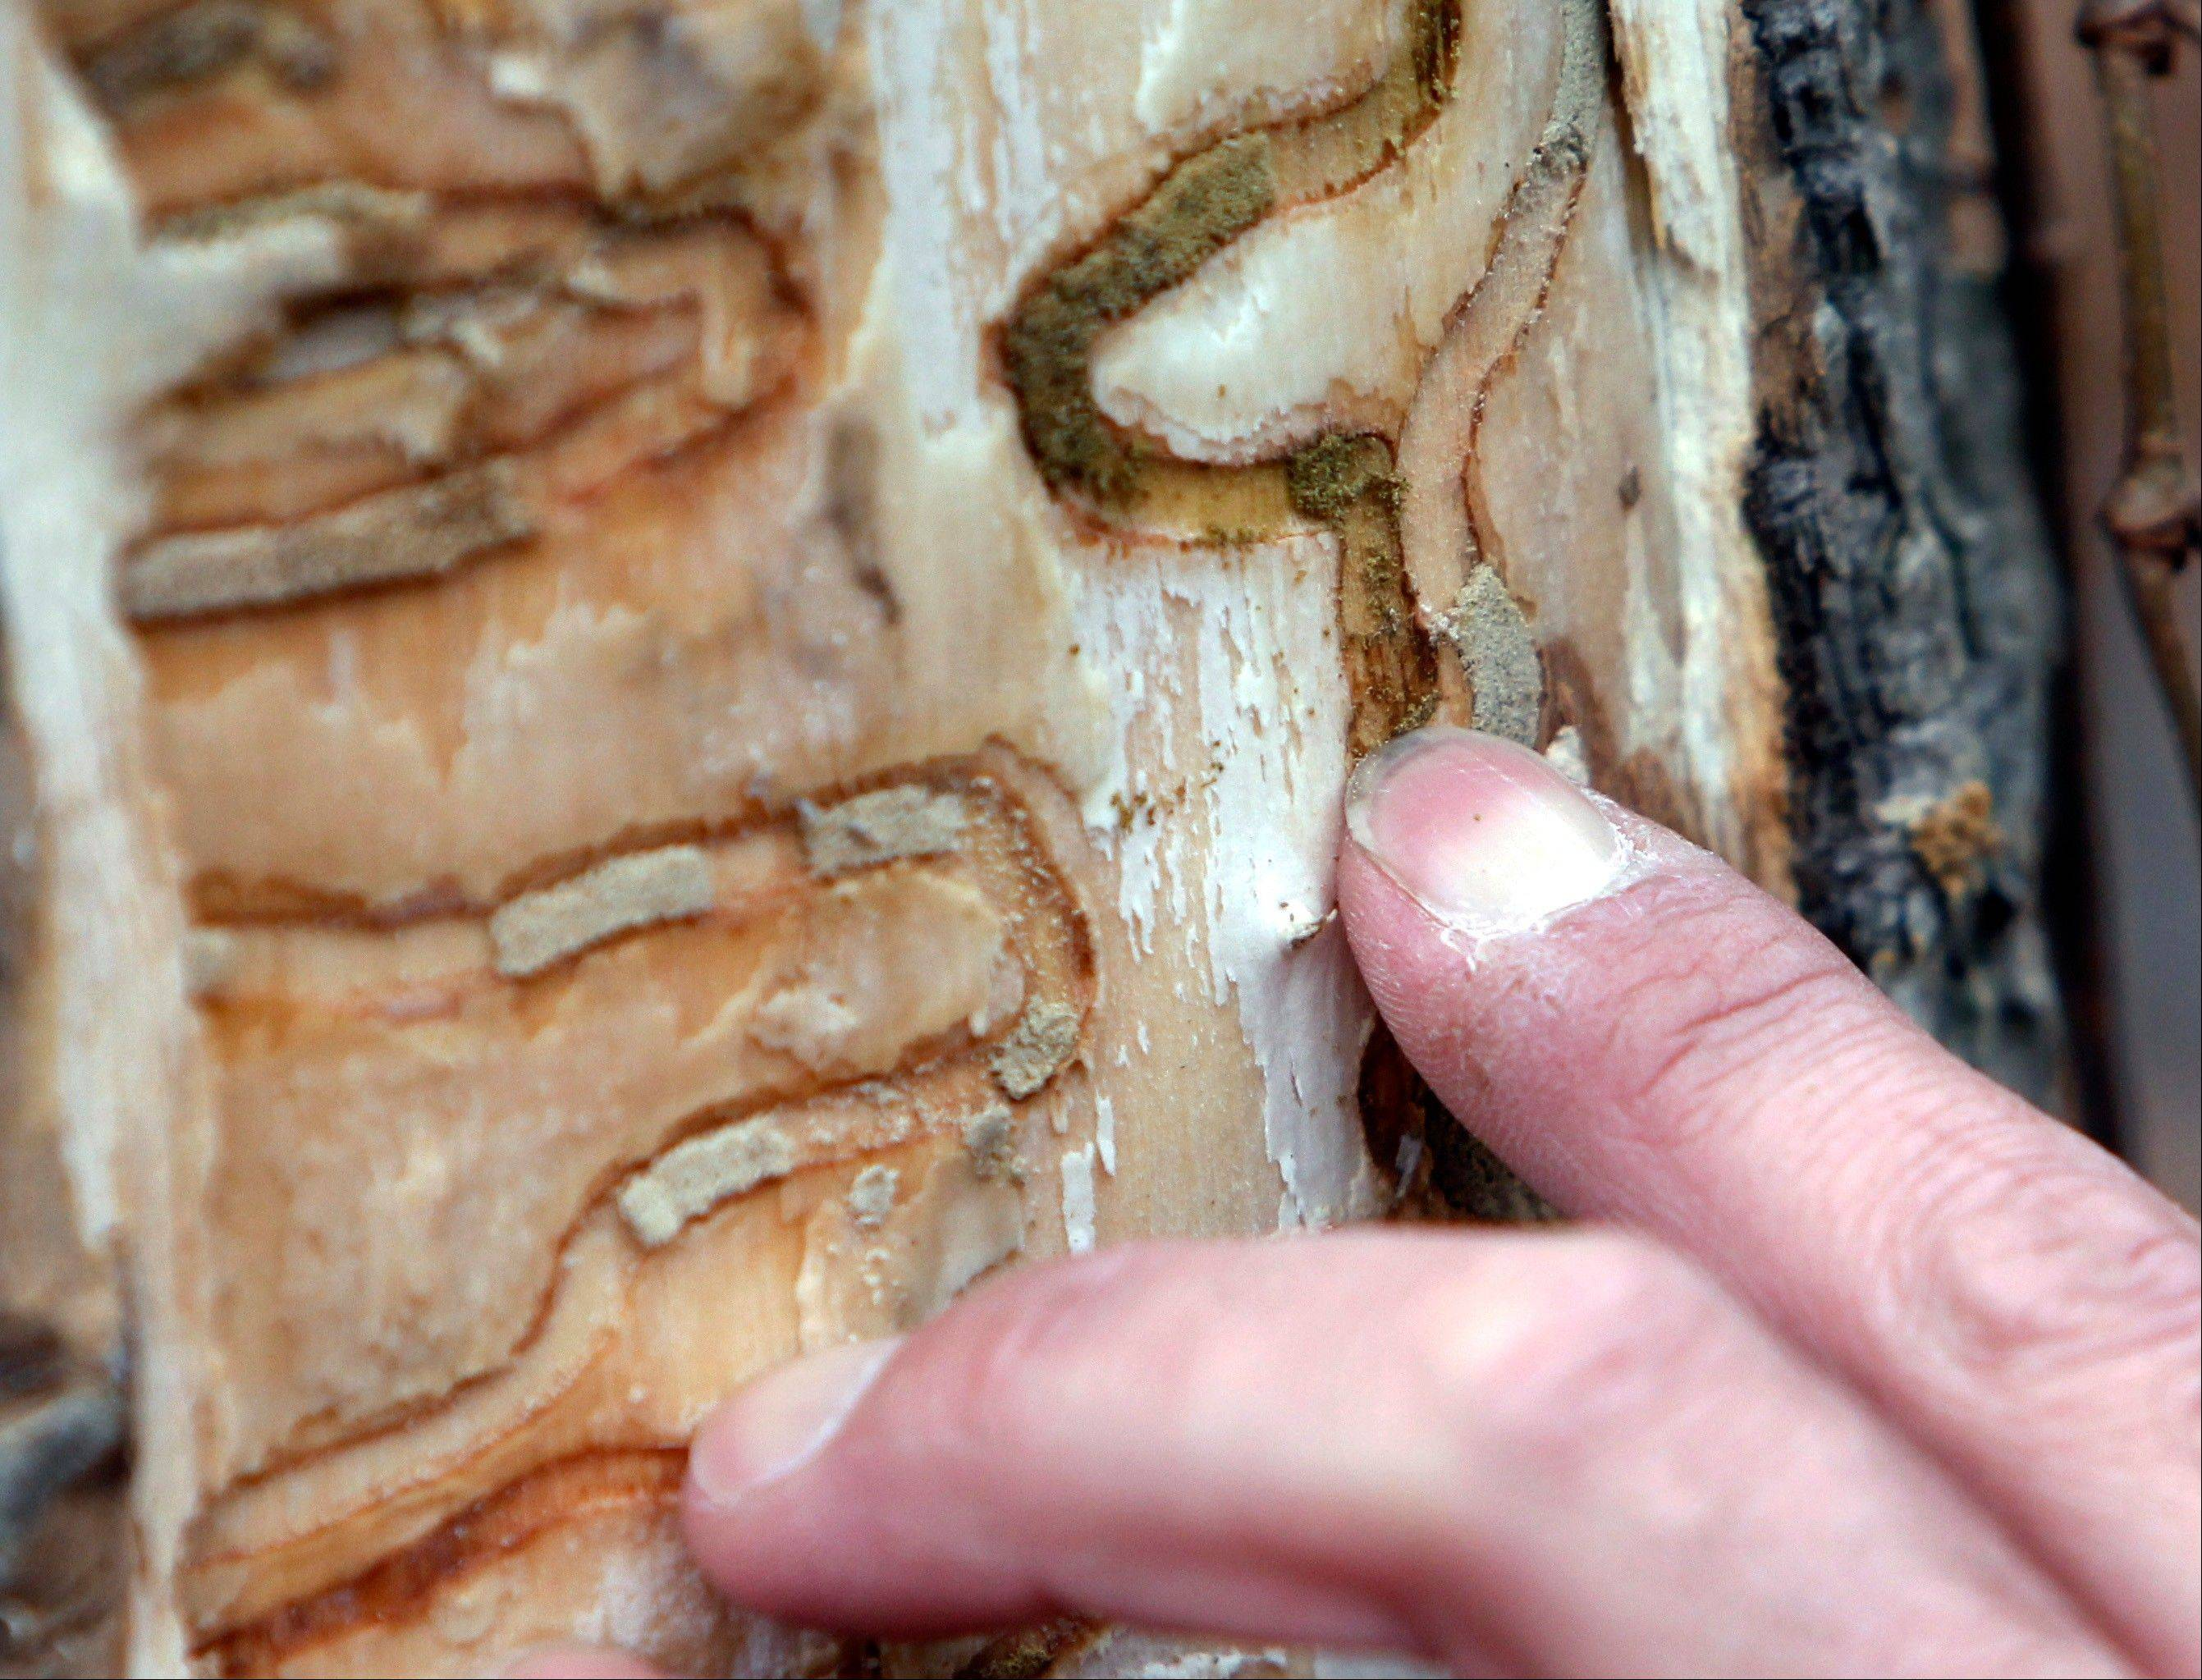 Forester Jeff Wiegert of the New York State Department of Environmental Conservation points out the markings left from emerald ash borer larvae on an ash tree in October at Esopus Bend Nature Preserve in Saugerties, N.Y.